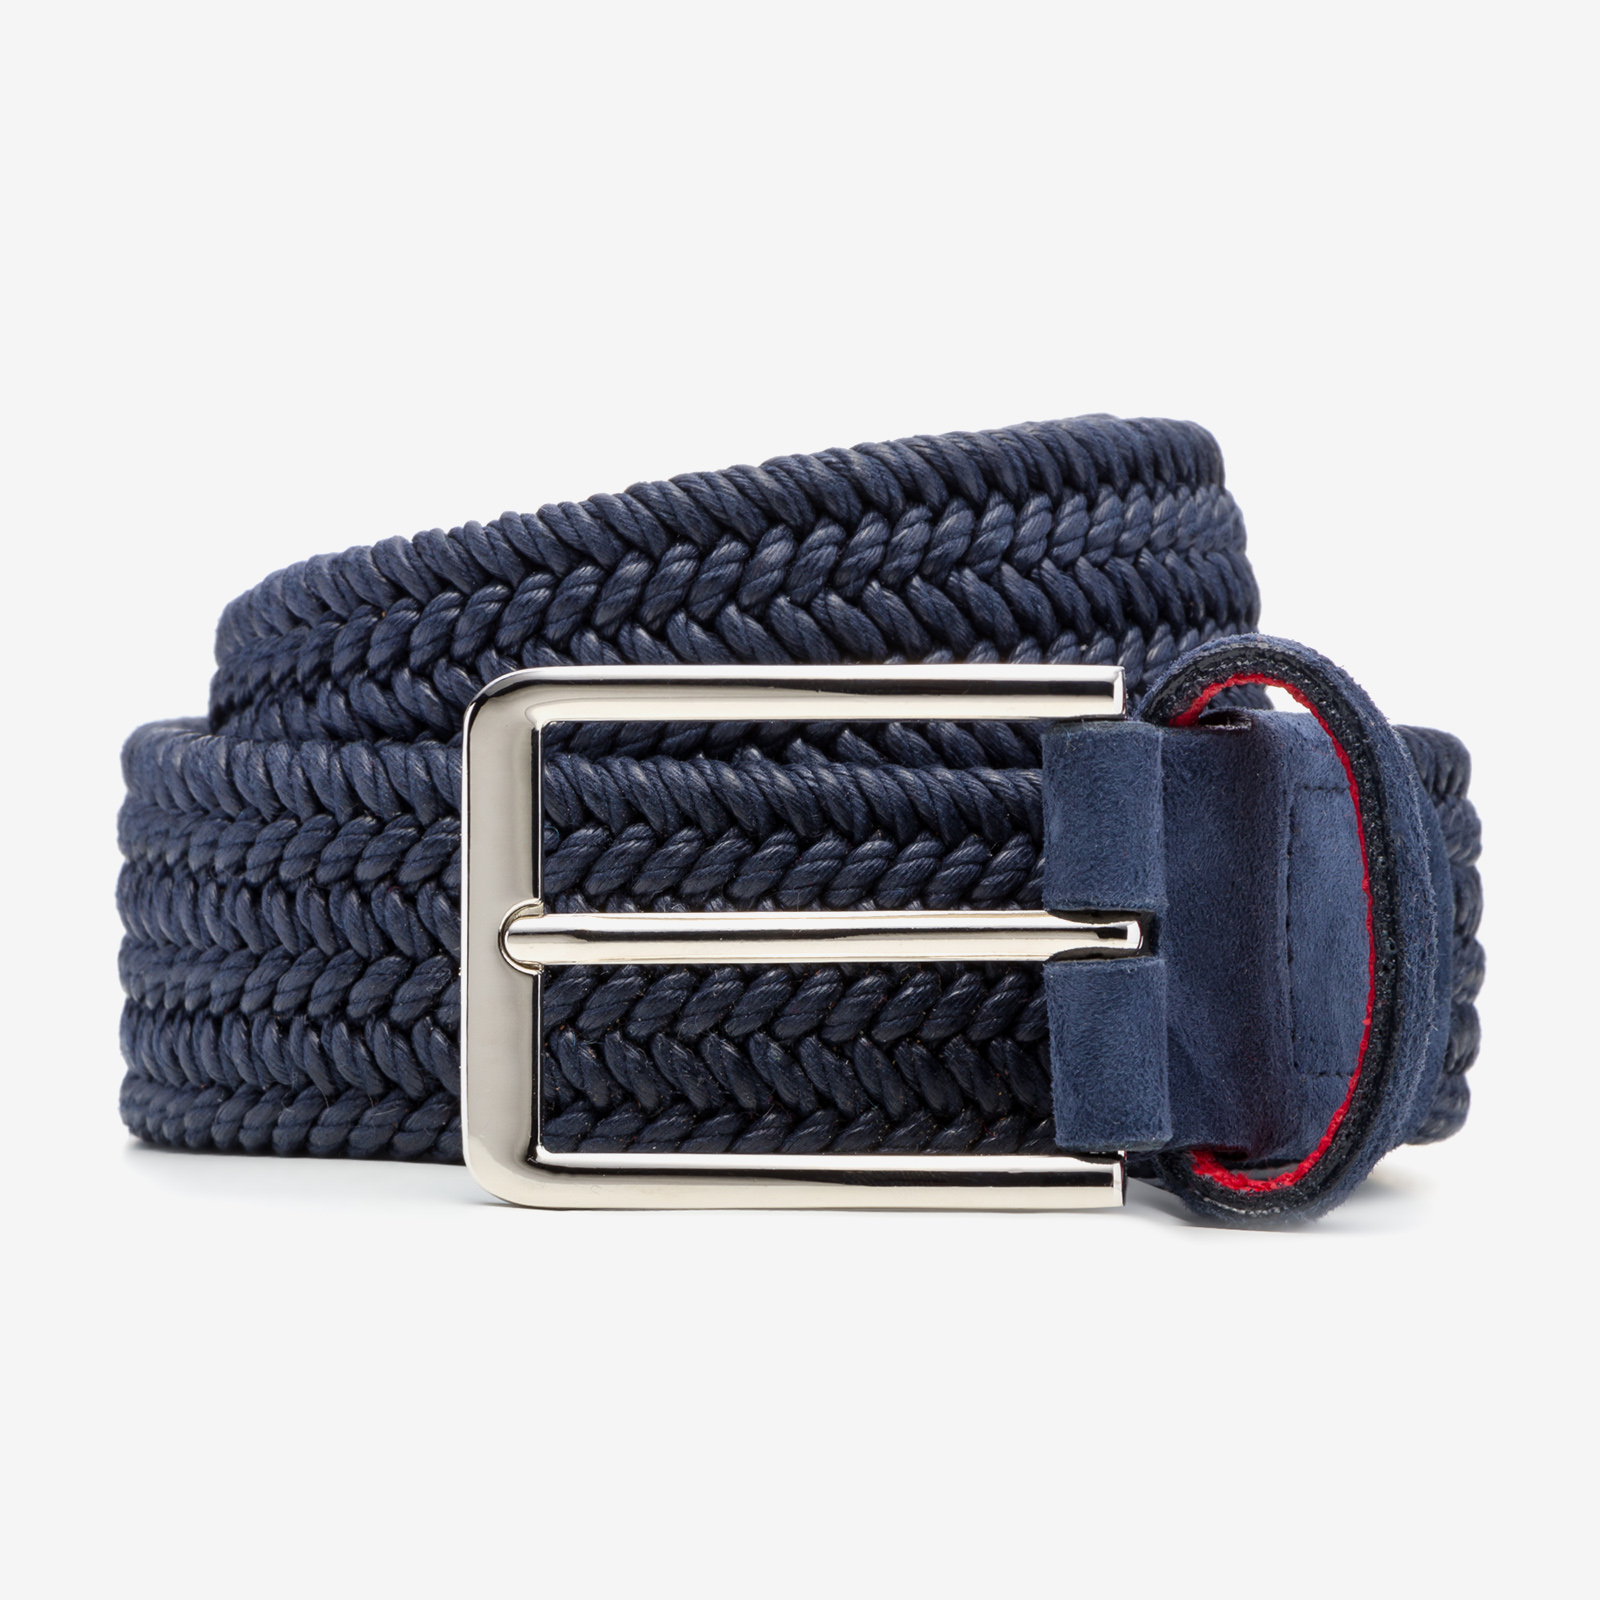 Belt product picture